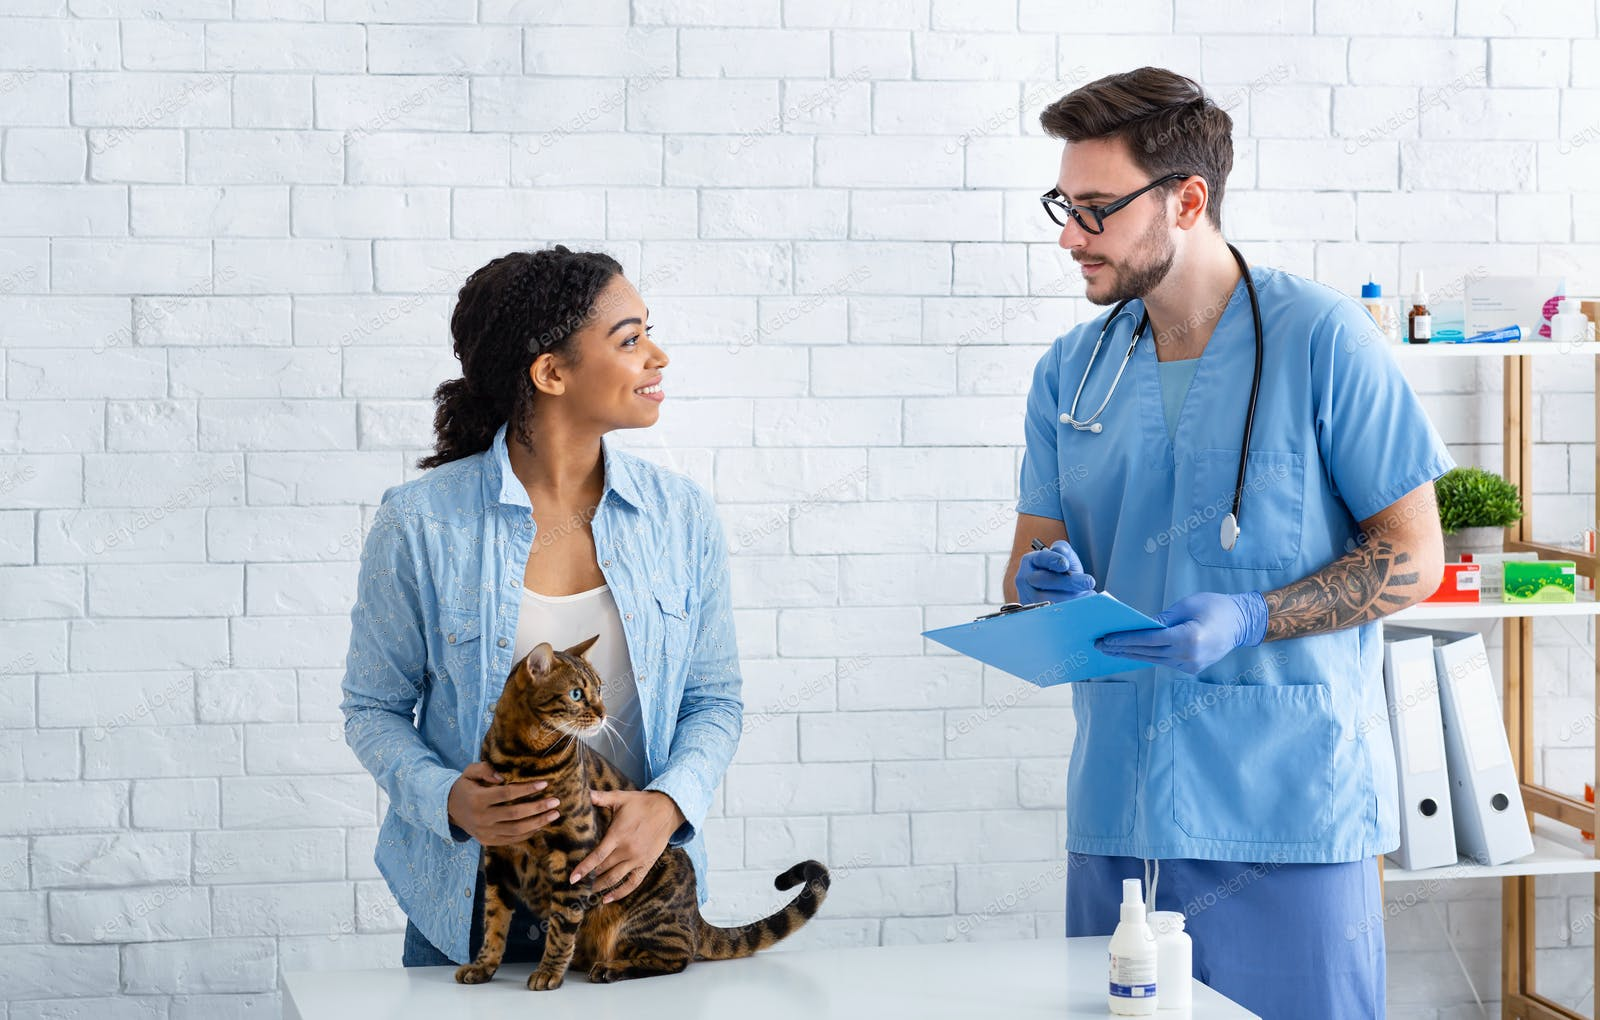 African American Woman With Tabby Cat On Visit To Vet Doctor At Medical Office Photo By Prostock Studio On Envato Elements